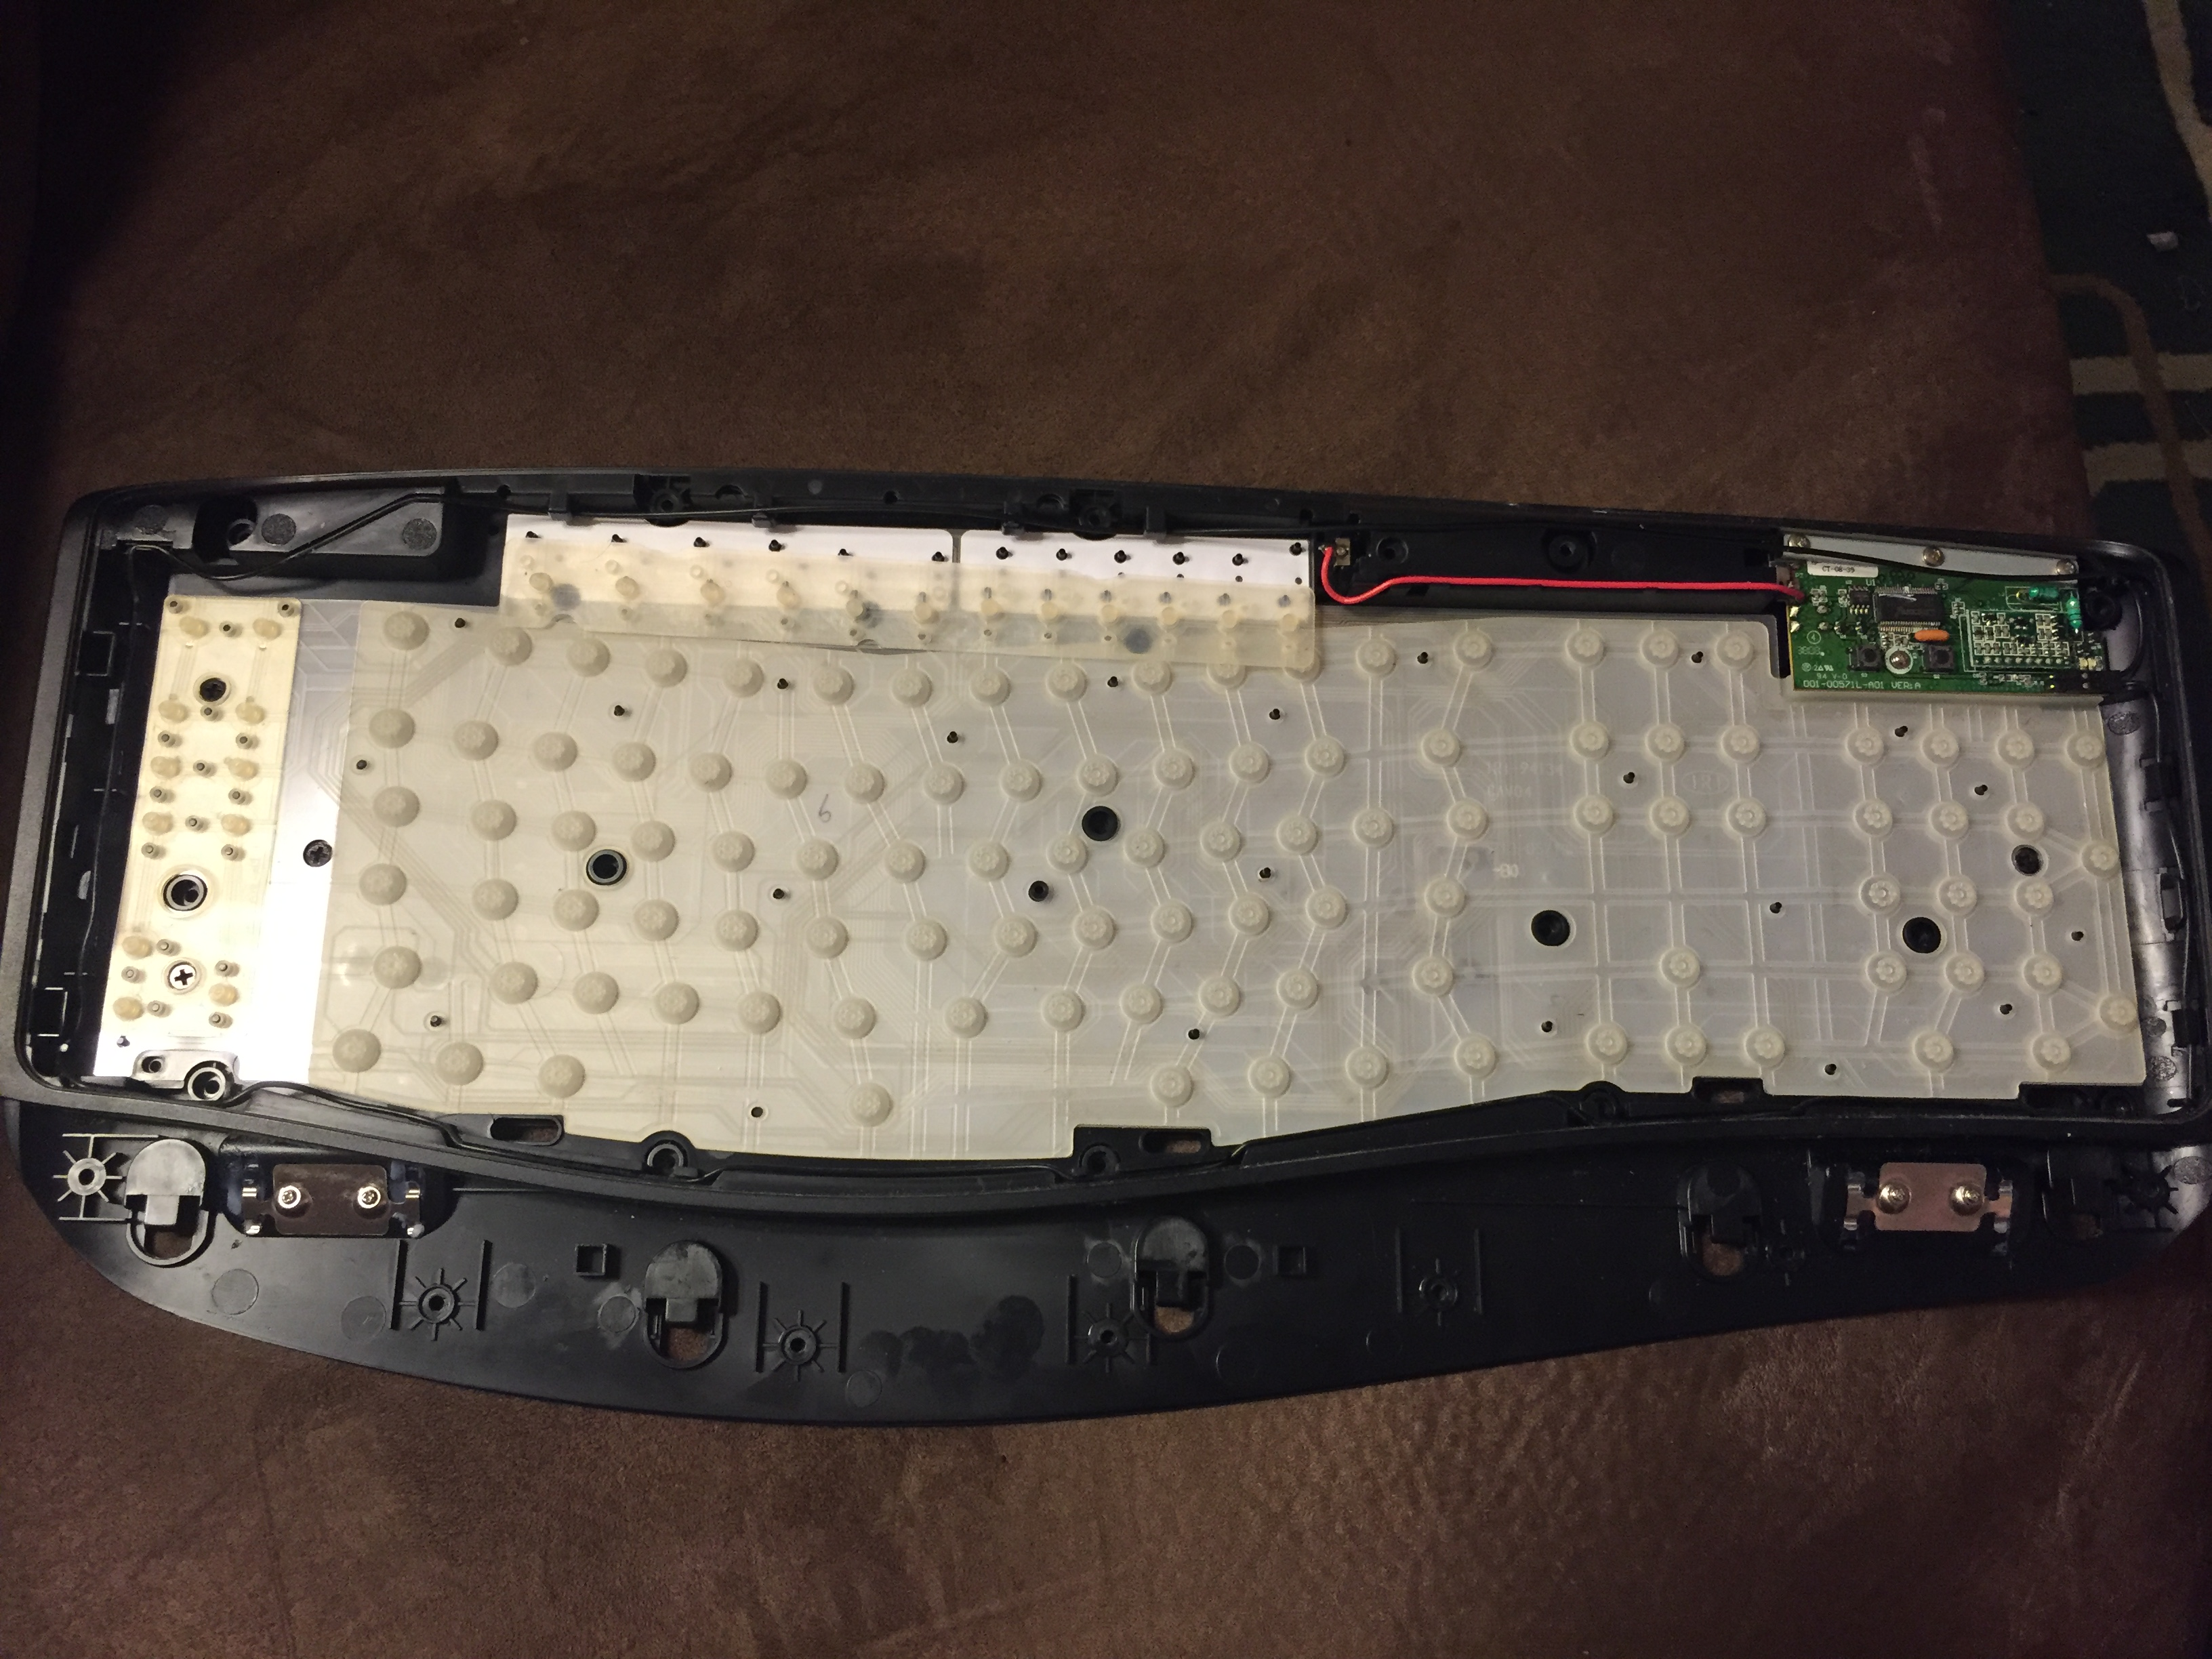 843f824a5b7 Microsoft Wireless Laser Keyboard 5000 Assemble/Disassemble because of  stuck battery – teknicality